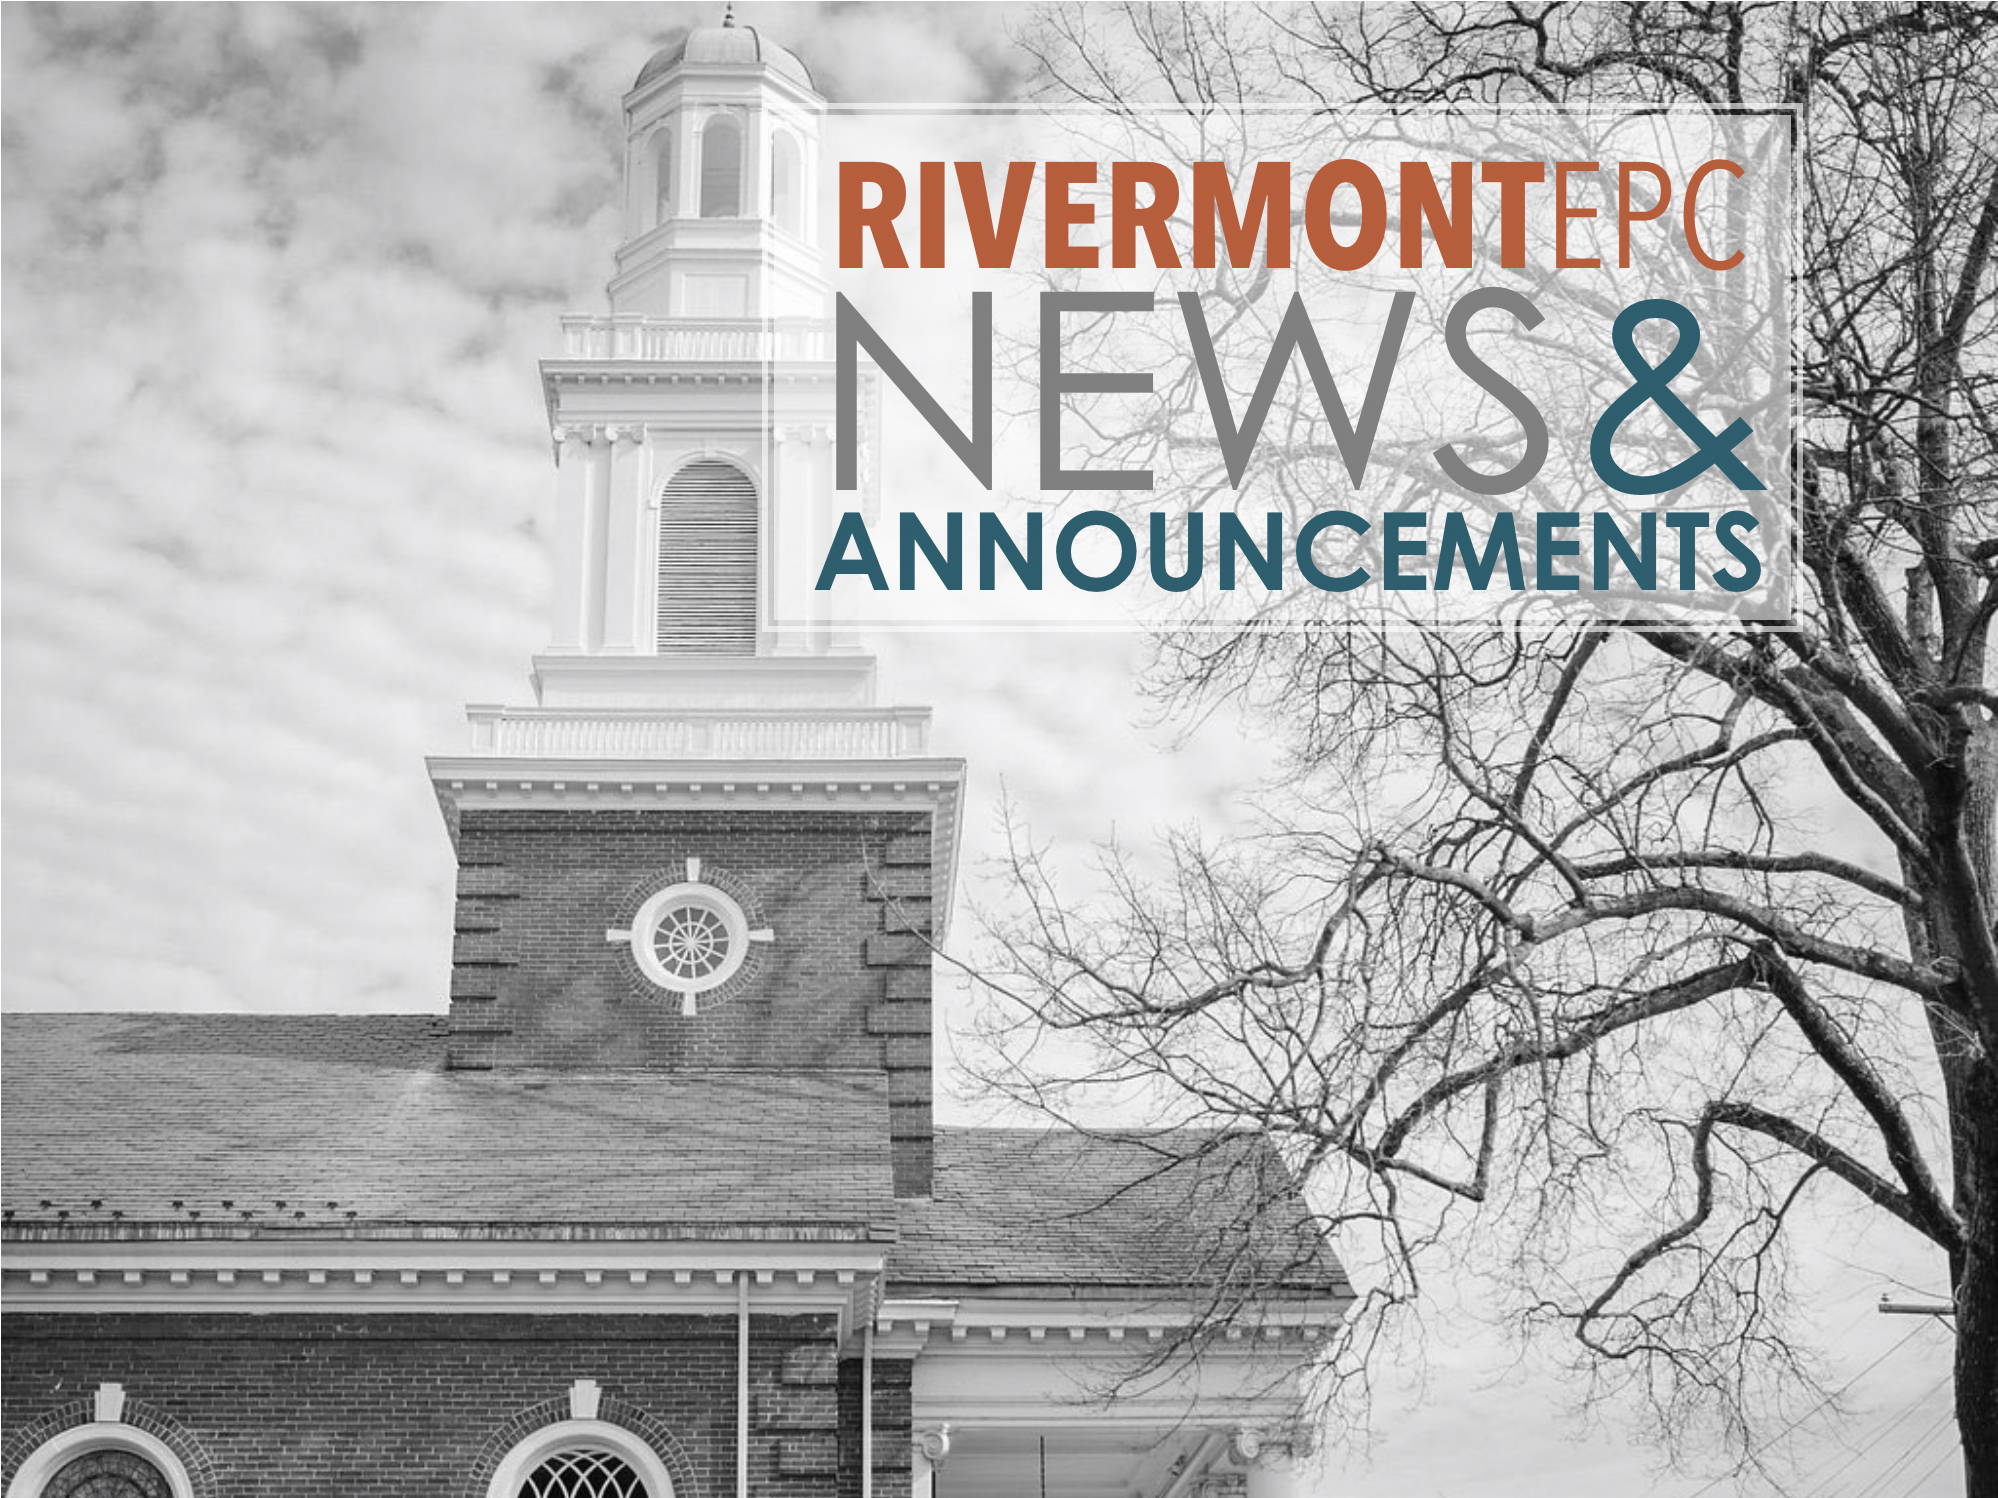 repc news & announcements header